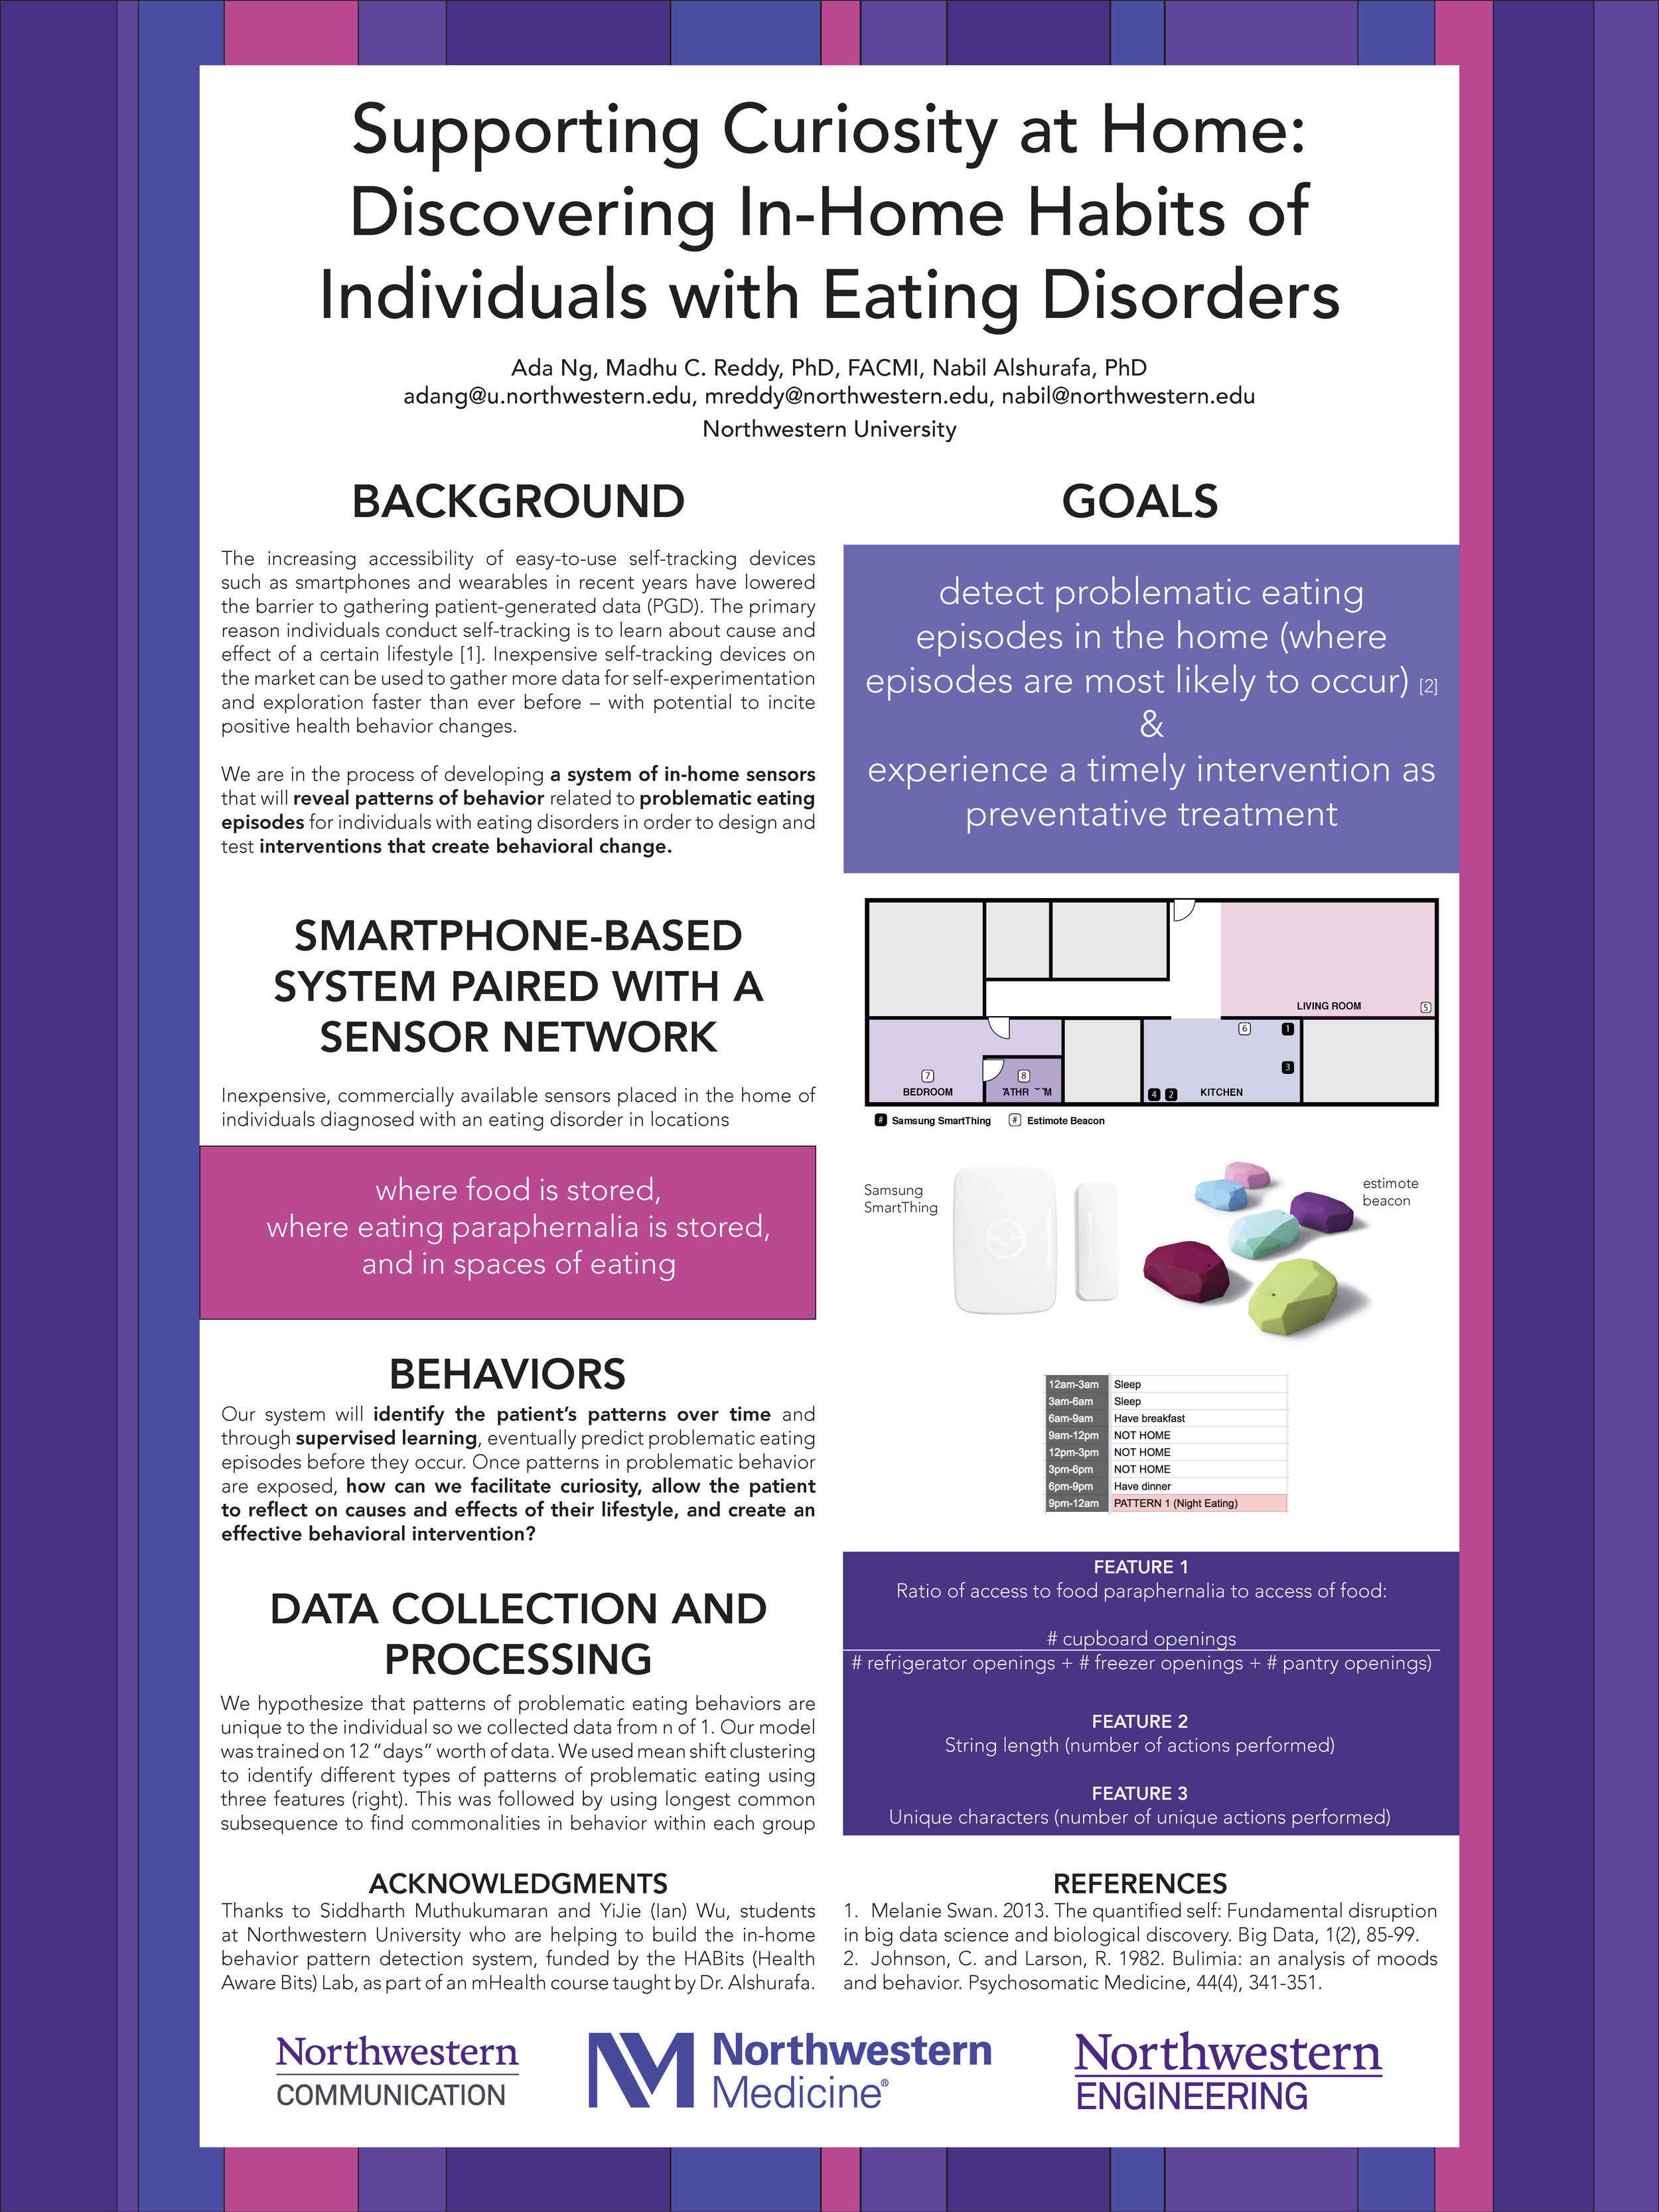 Workshop Poster +Extended Abstract - Presented at the Designing for Curiosity workshop at CHI 2017 in Denver, CO.Click here for the extended abstract and here to download the poster.